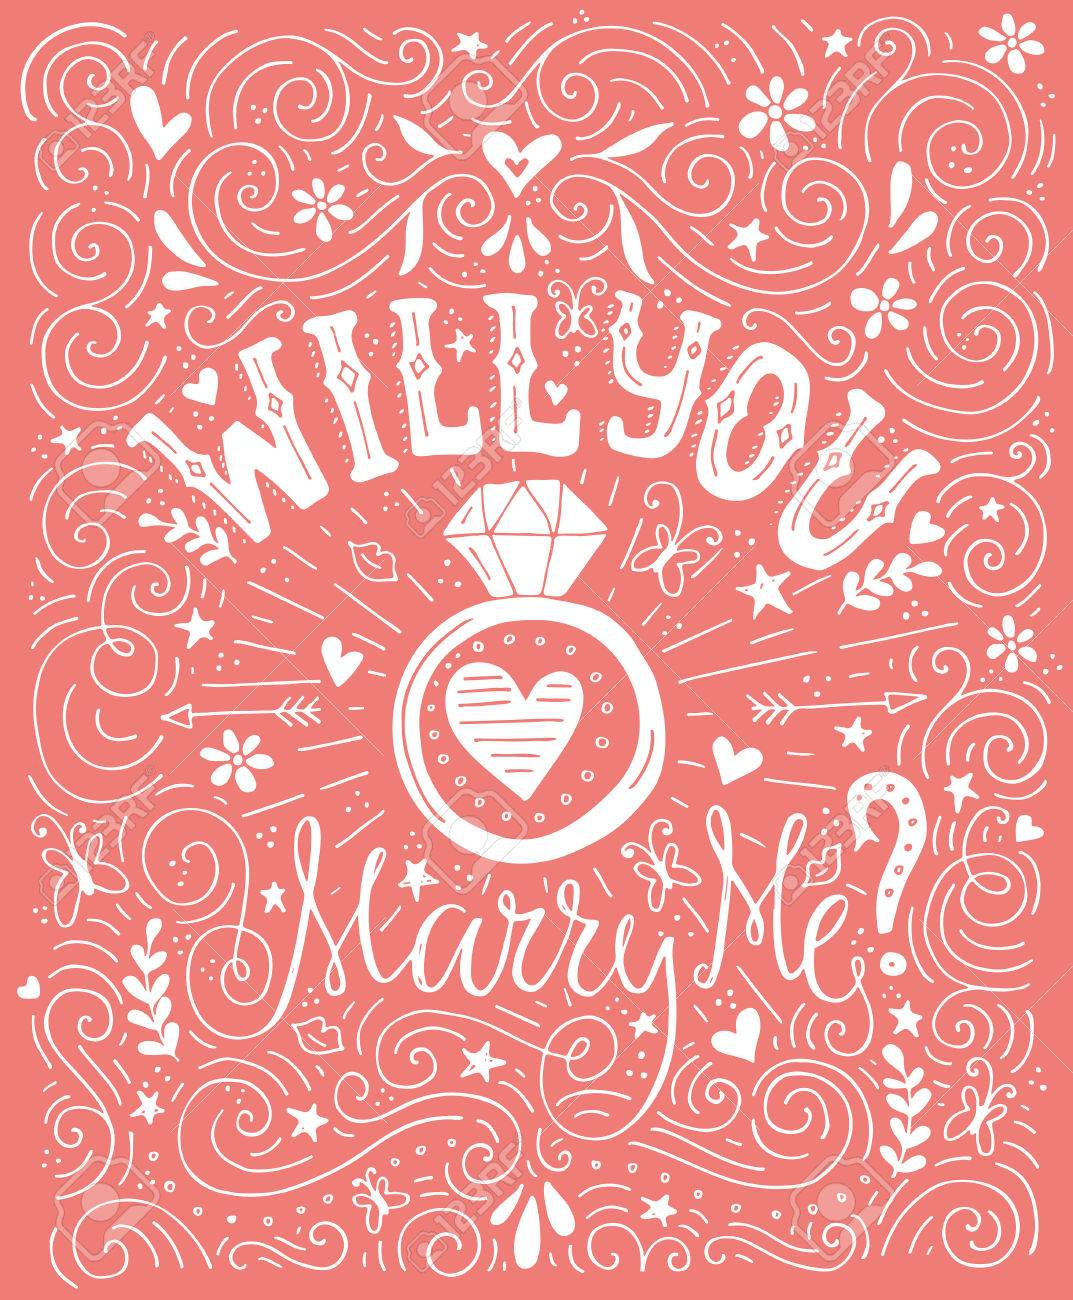 Will You Marry Me - Handdrawn Card With Marriage Proposal, Wedding ...